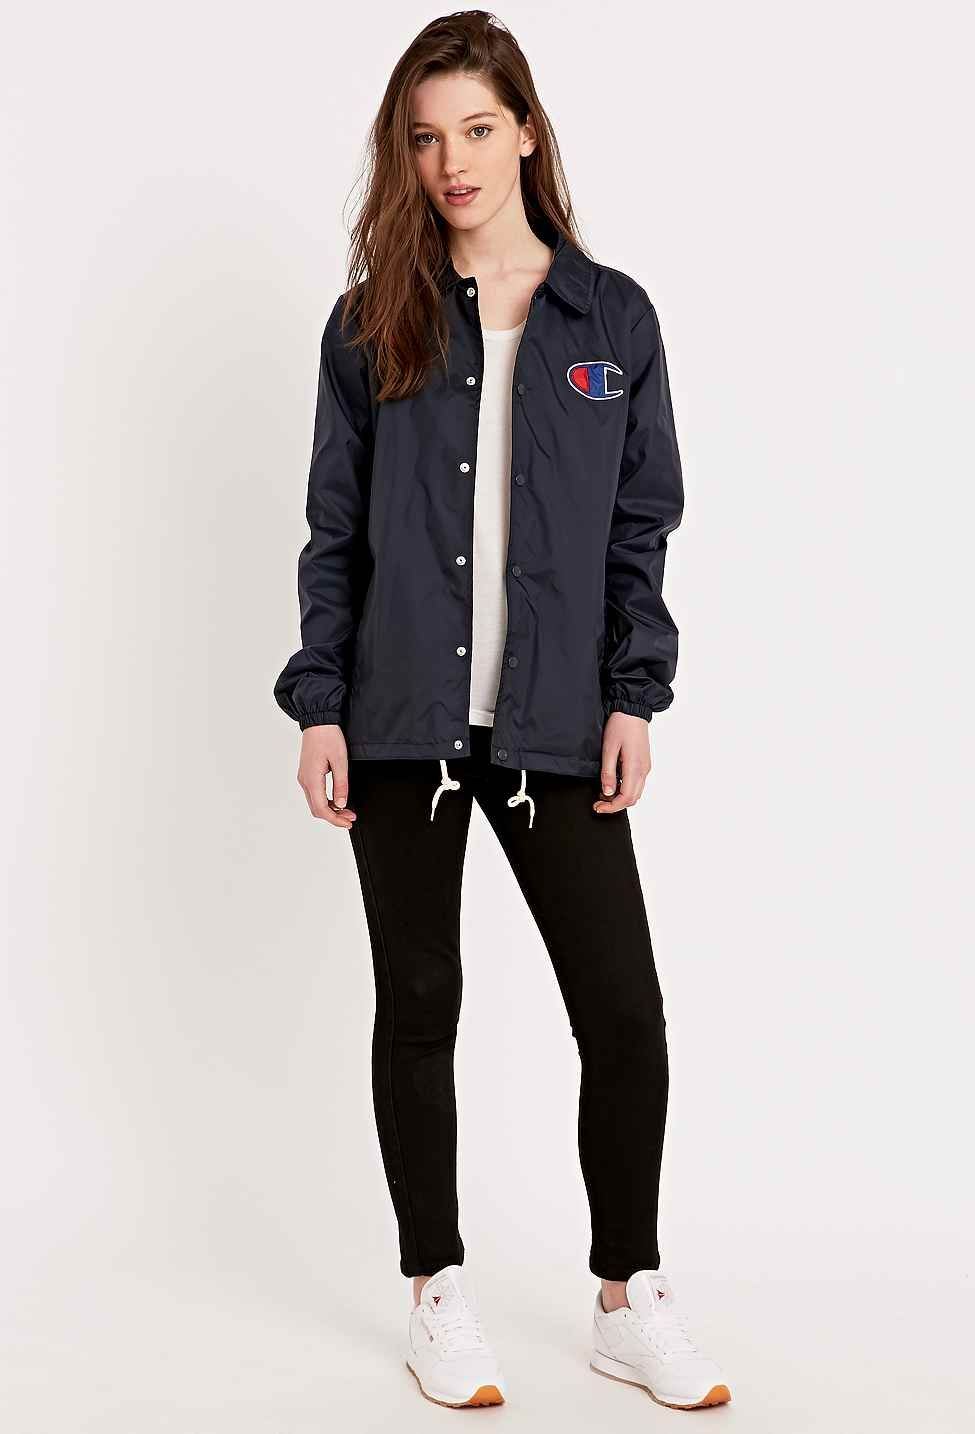 3f2b302b822 Champion Coaches Jacket in Navy | glam | Champion clothing, Champion ...